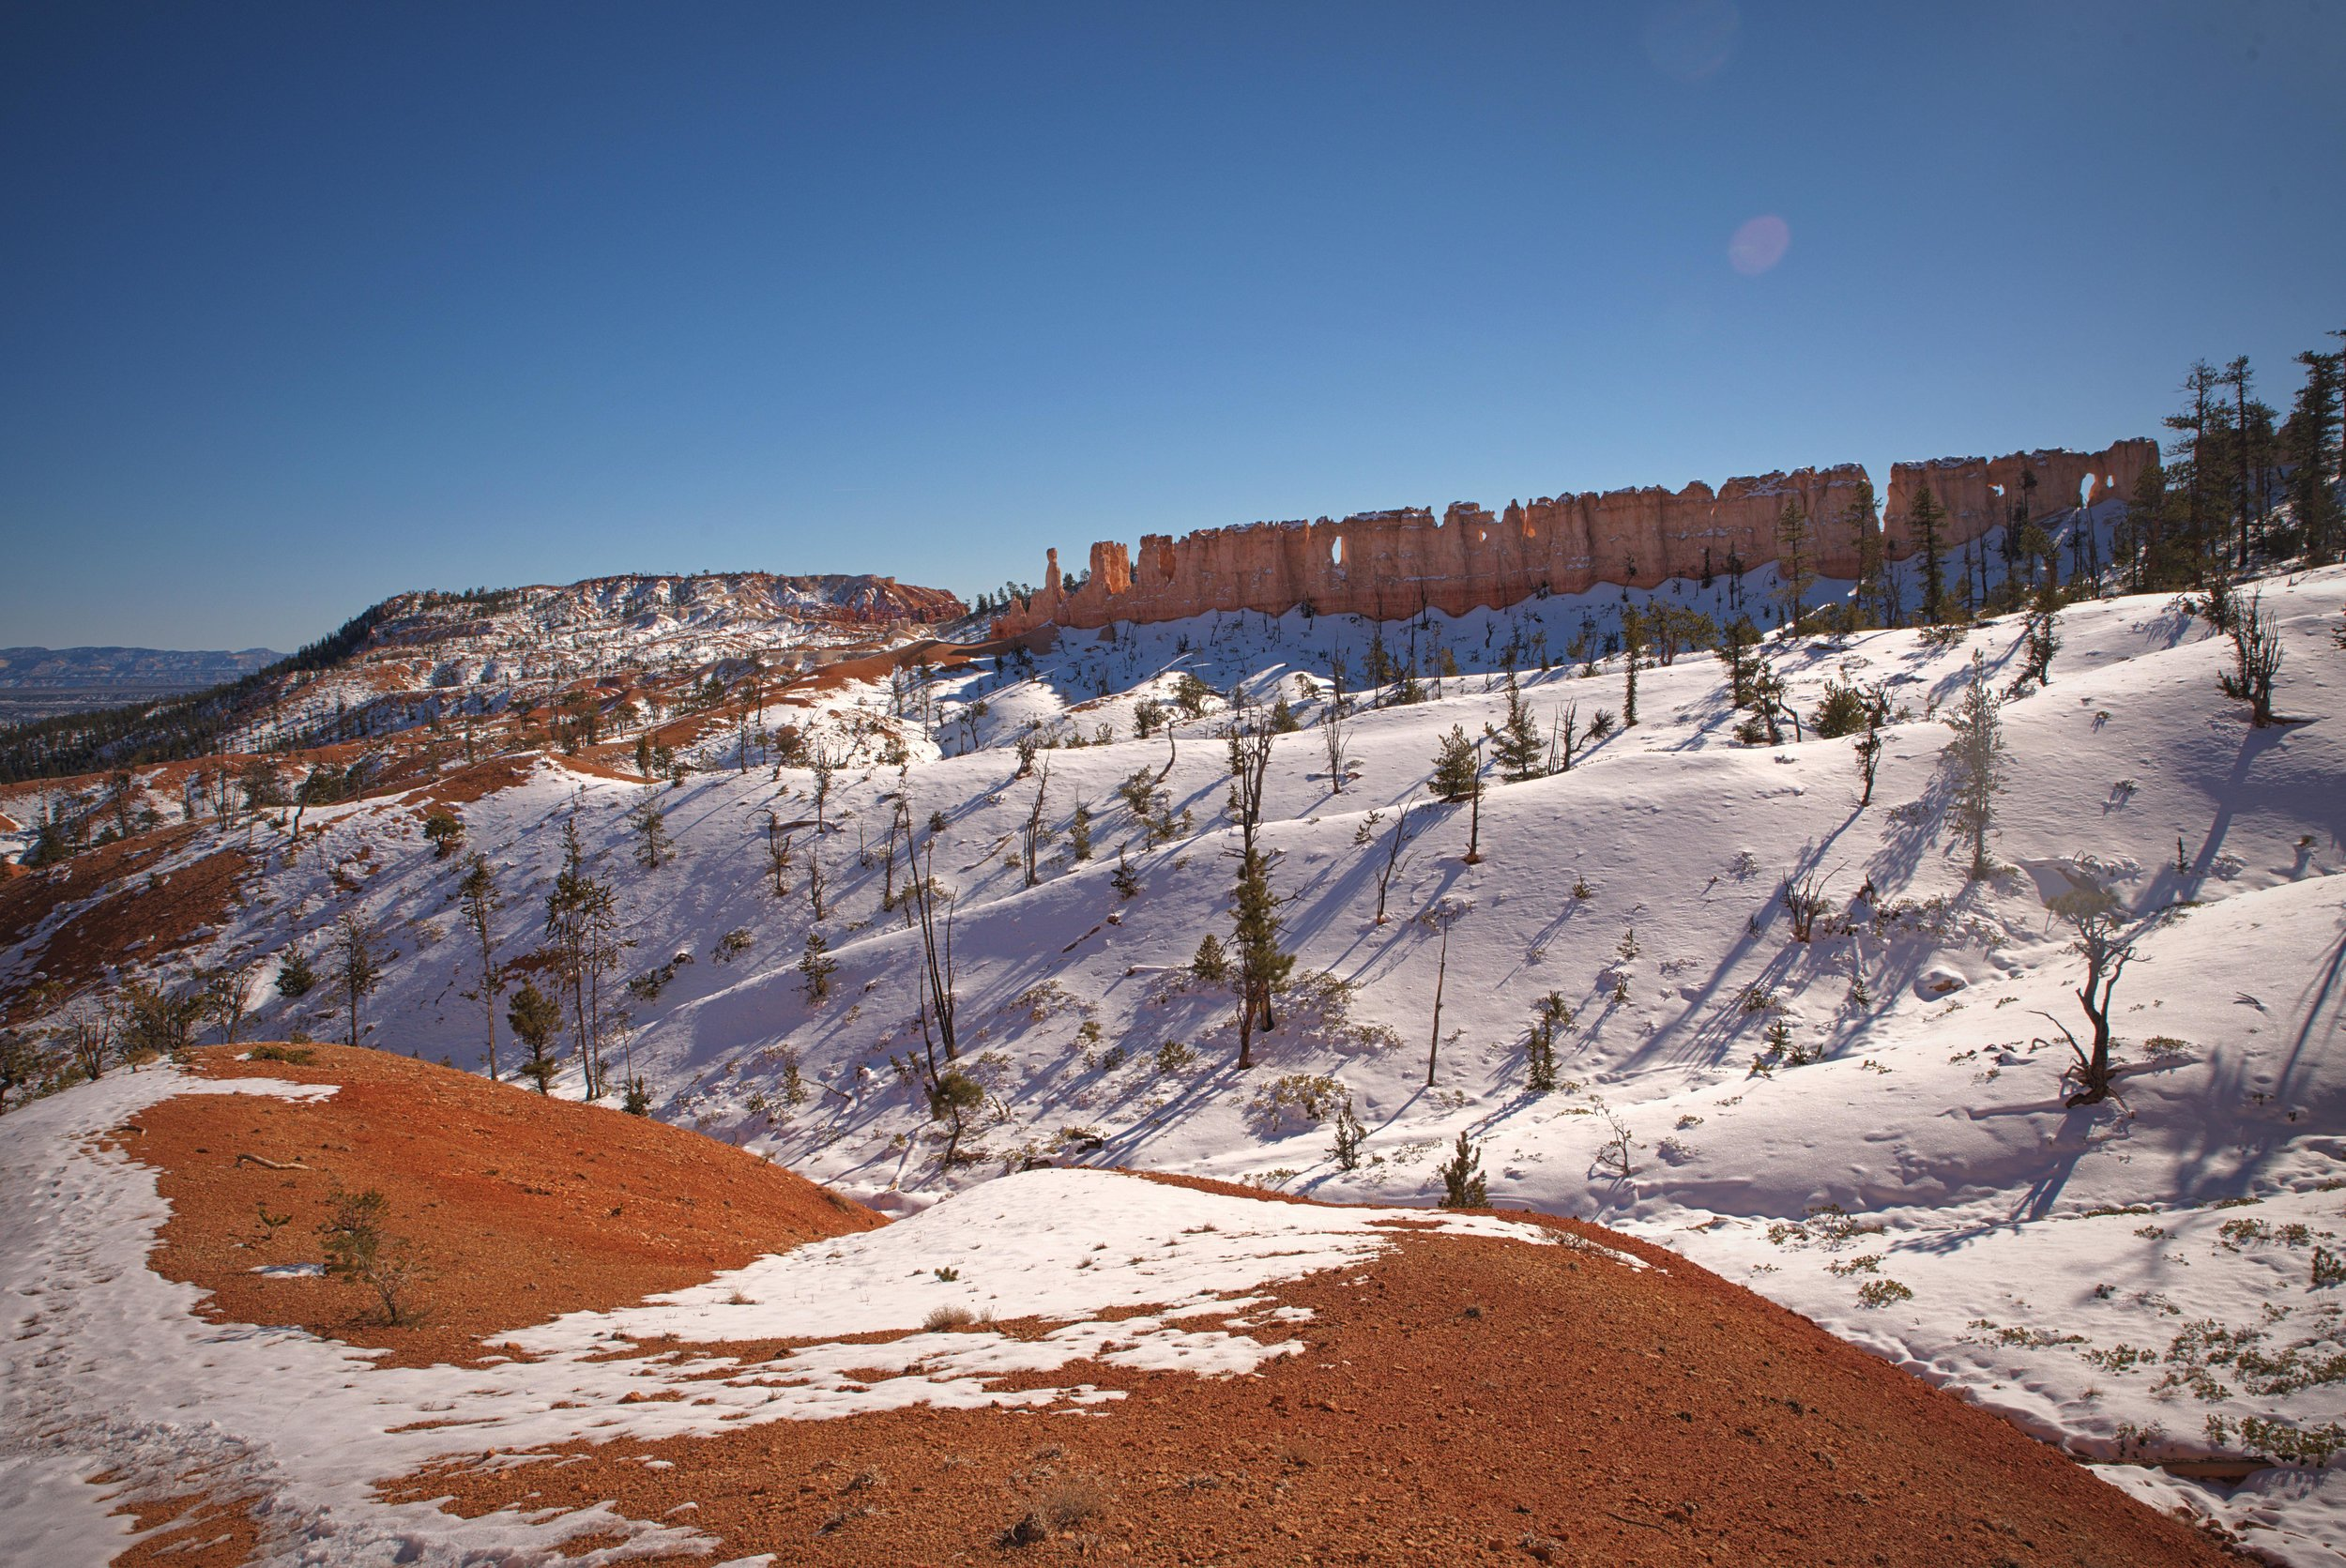 The Chinese Wall formation from the Fairyland Loop Trail.